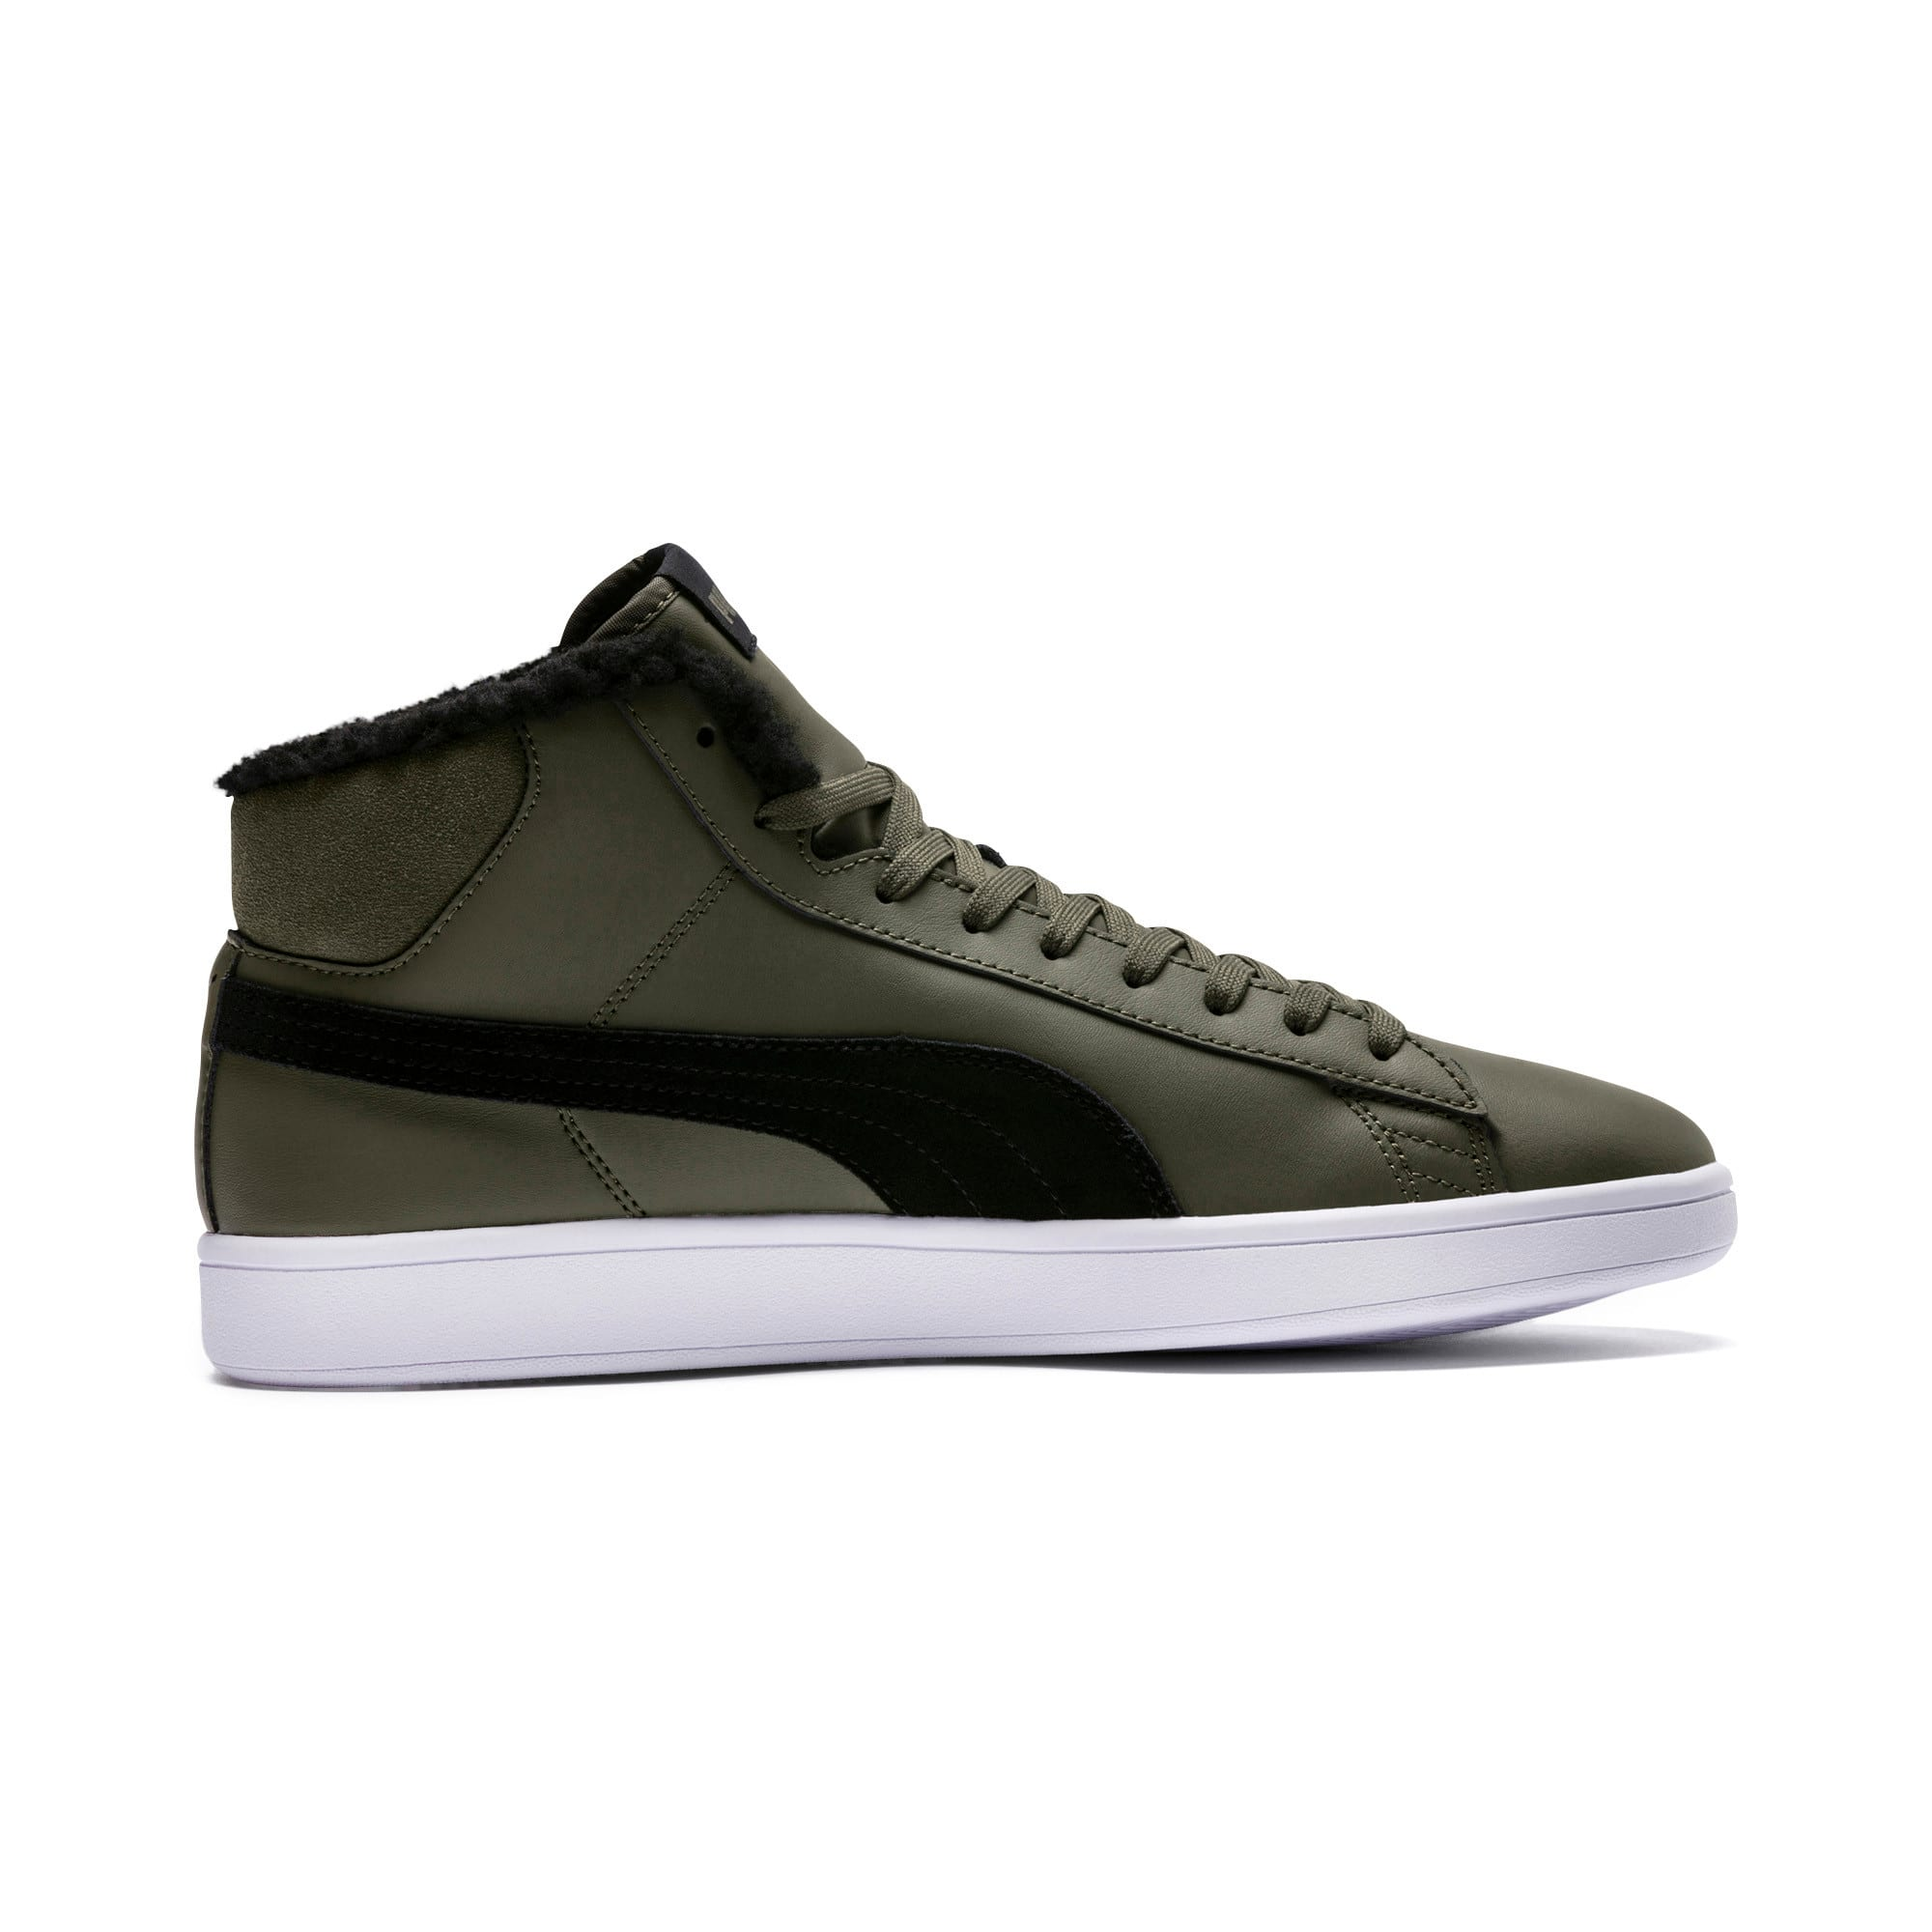 Thumbnail 5 of Smash v2 Mid Winterized Leather High Tops, Forest Night-Puma Black, medium-IND